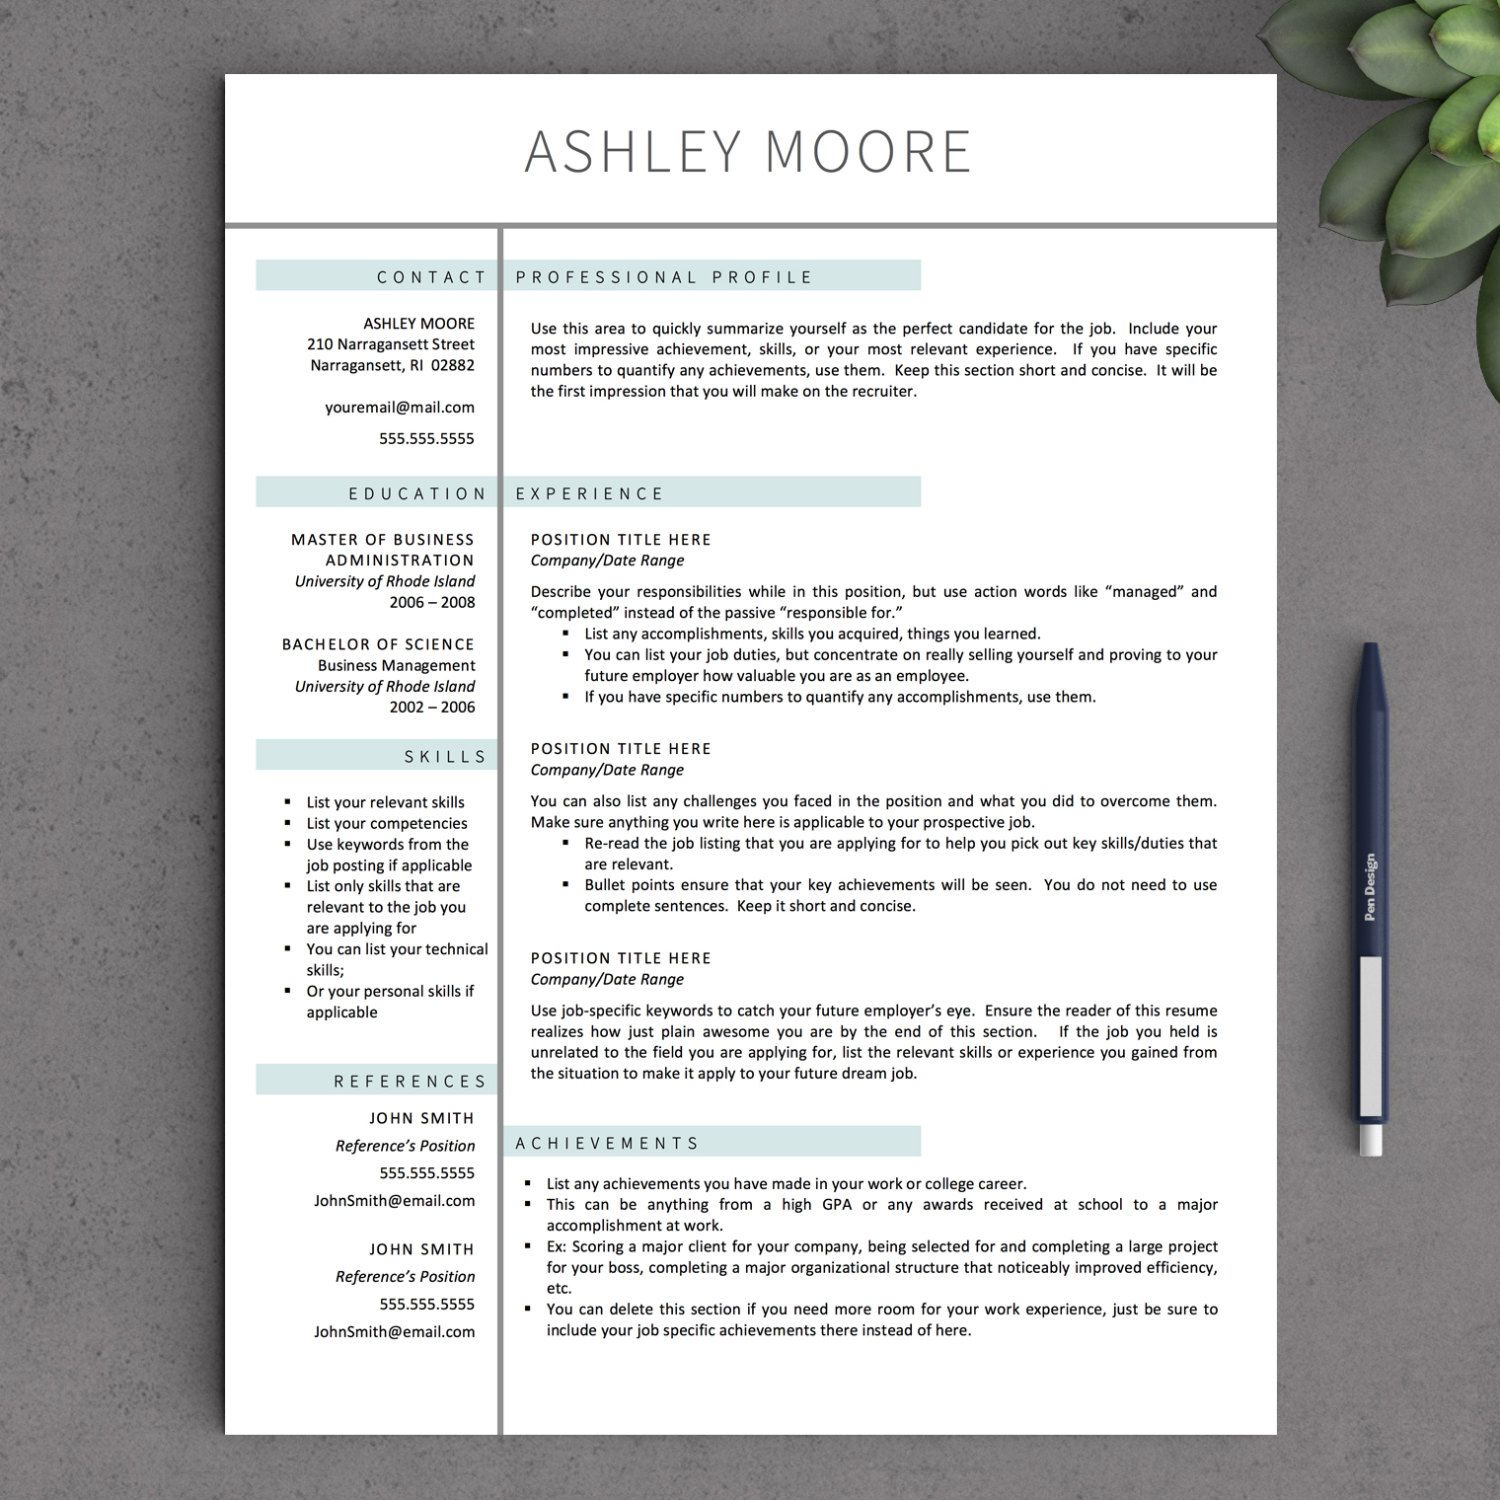 Fine 1 Page Resume Format Free Download Huge 10 Envelope Template Flat 15 Year Old Resume Sample 18th Invitation Templates Old 1and1 Templates Fresh2 Binder Spine Template Resume Template For Pages | Resume Format Download Pdf